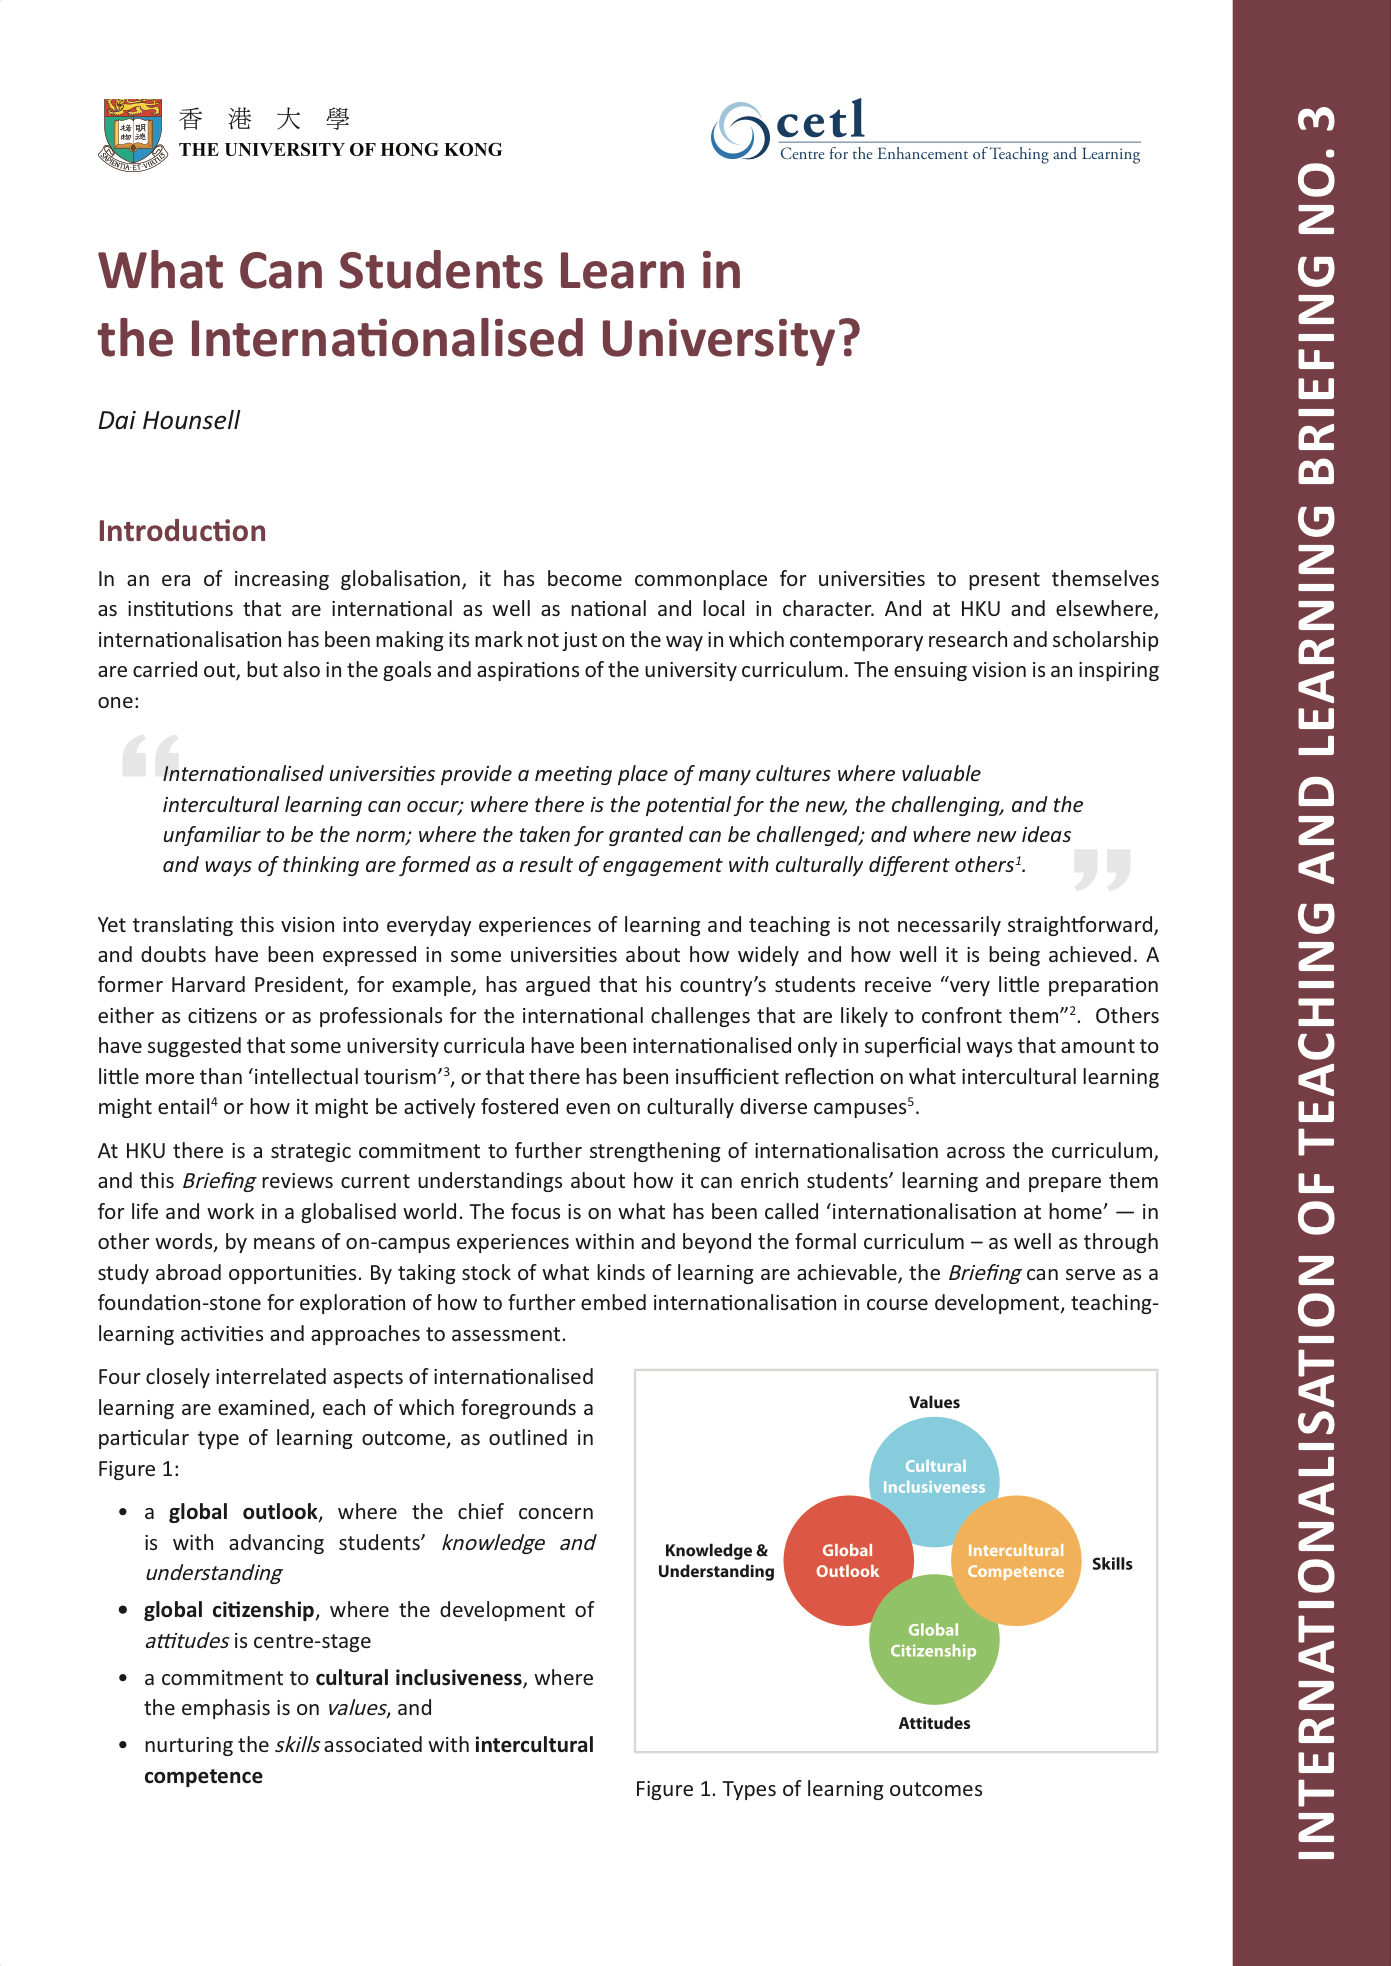 3. What Can Students Learn in the Internationalised University?